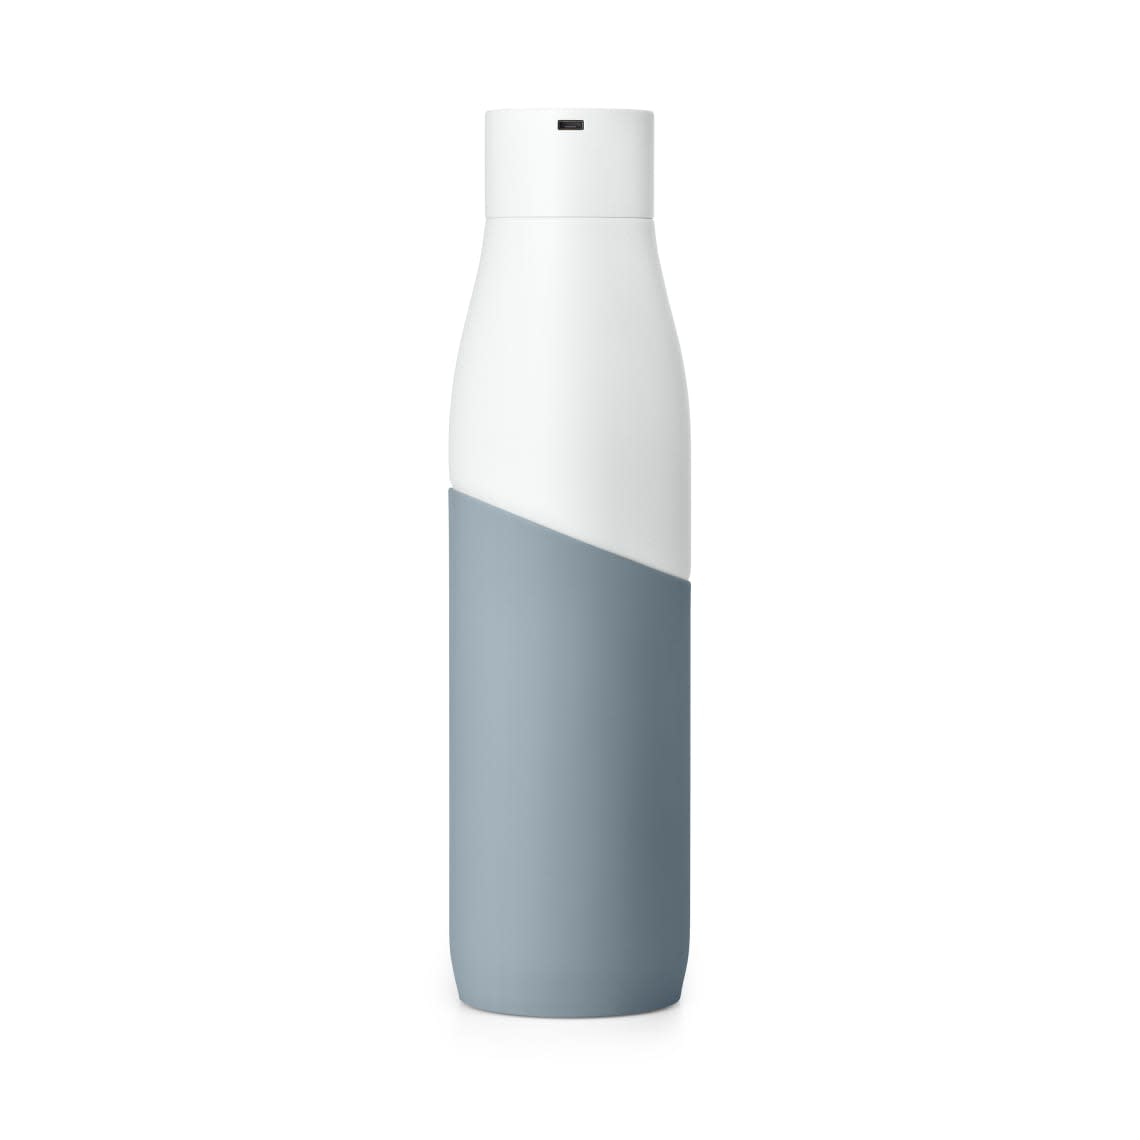 LARQ Bottle Movement PureVis - White / Pebble